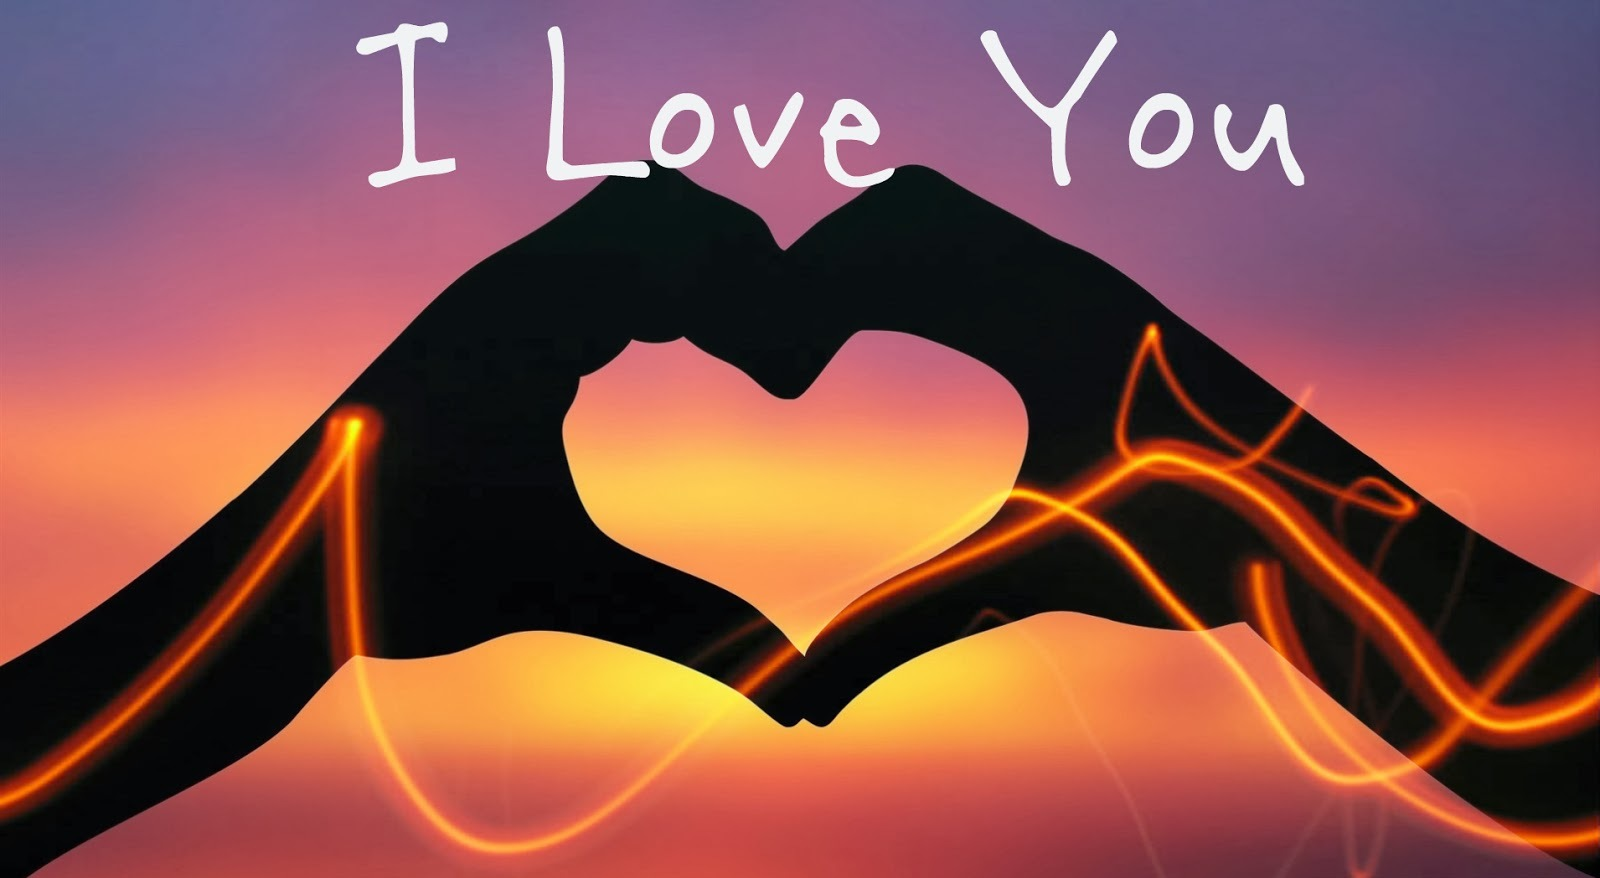 Love You Wallpaper Full Hd : I Love You Wallpapers, Pictures, Images